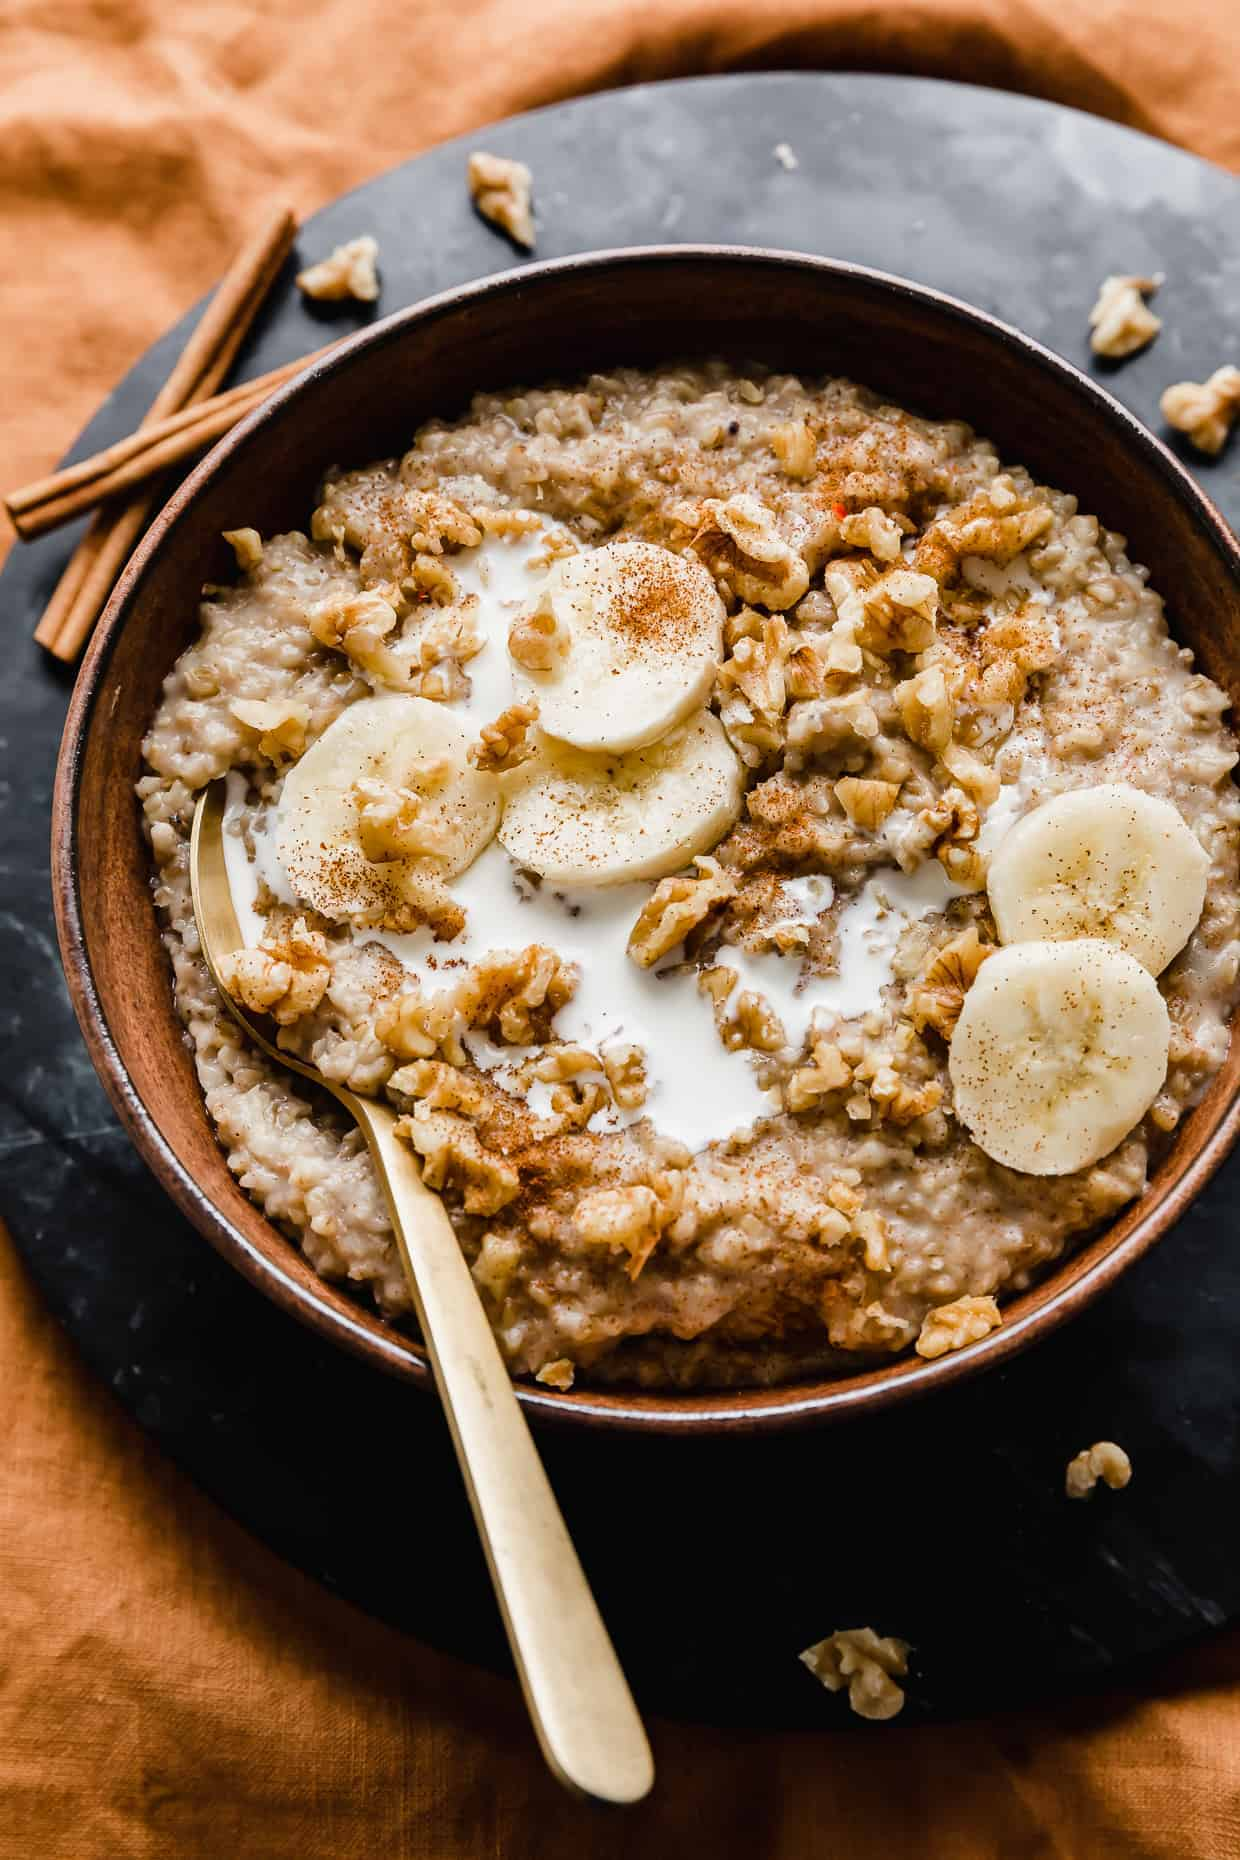 A wooden bowl full of Banana Steel Cut Oats topped with sliced bananas and walnuts against a black background.